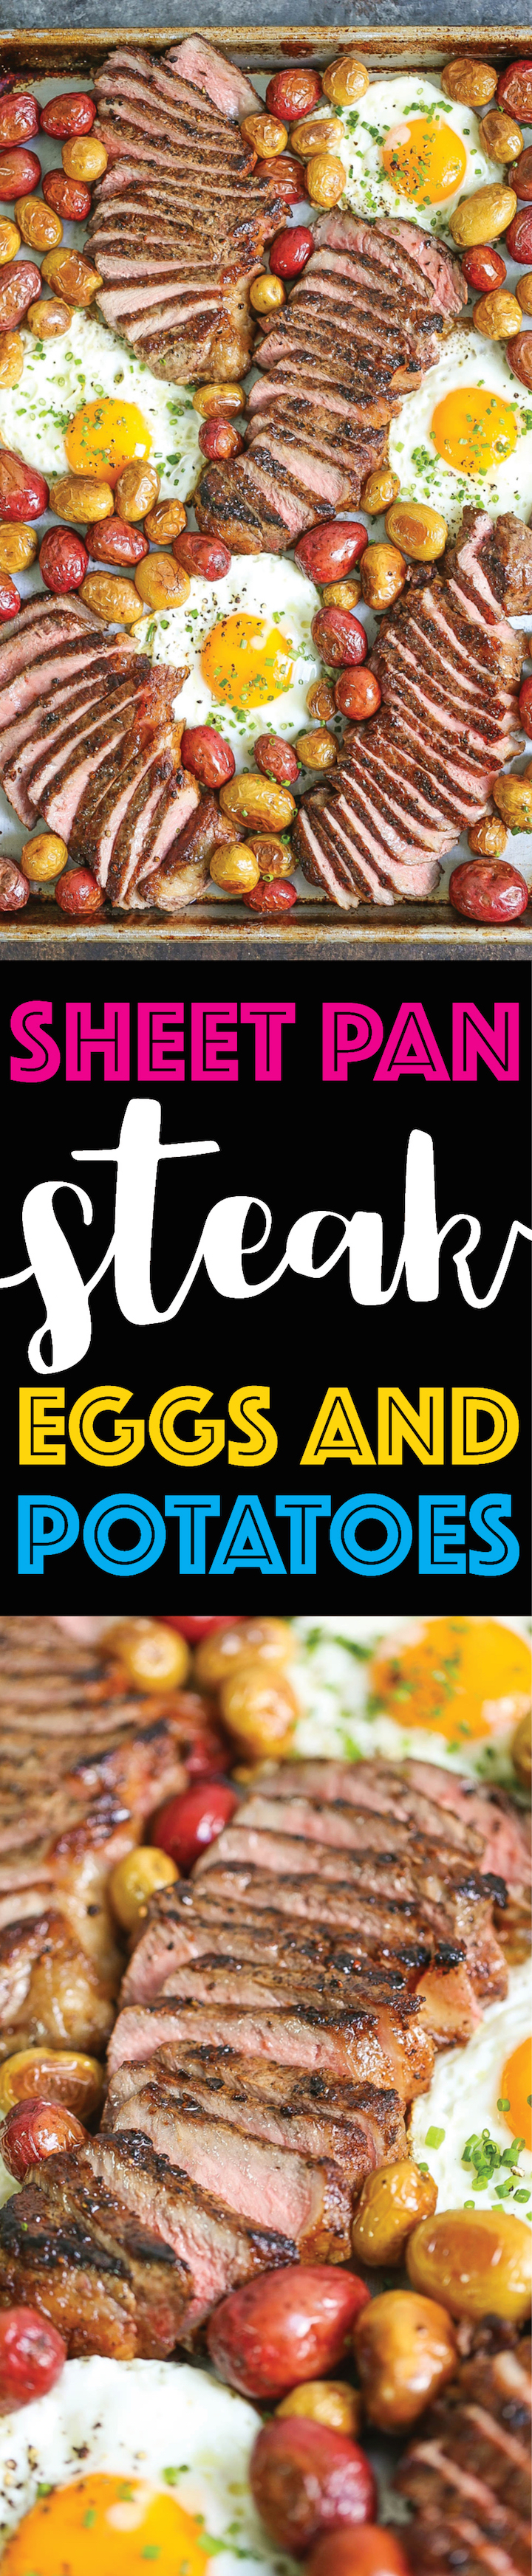 Sheet Pan Steak Eggs and Potatoes - Everyone's favorite steak and eggs turned into a complete SHEET PAN BREAKFAST! No fuss, no extra pans and easy clean up!